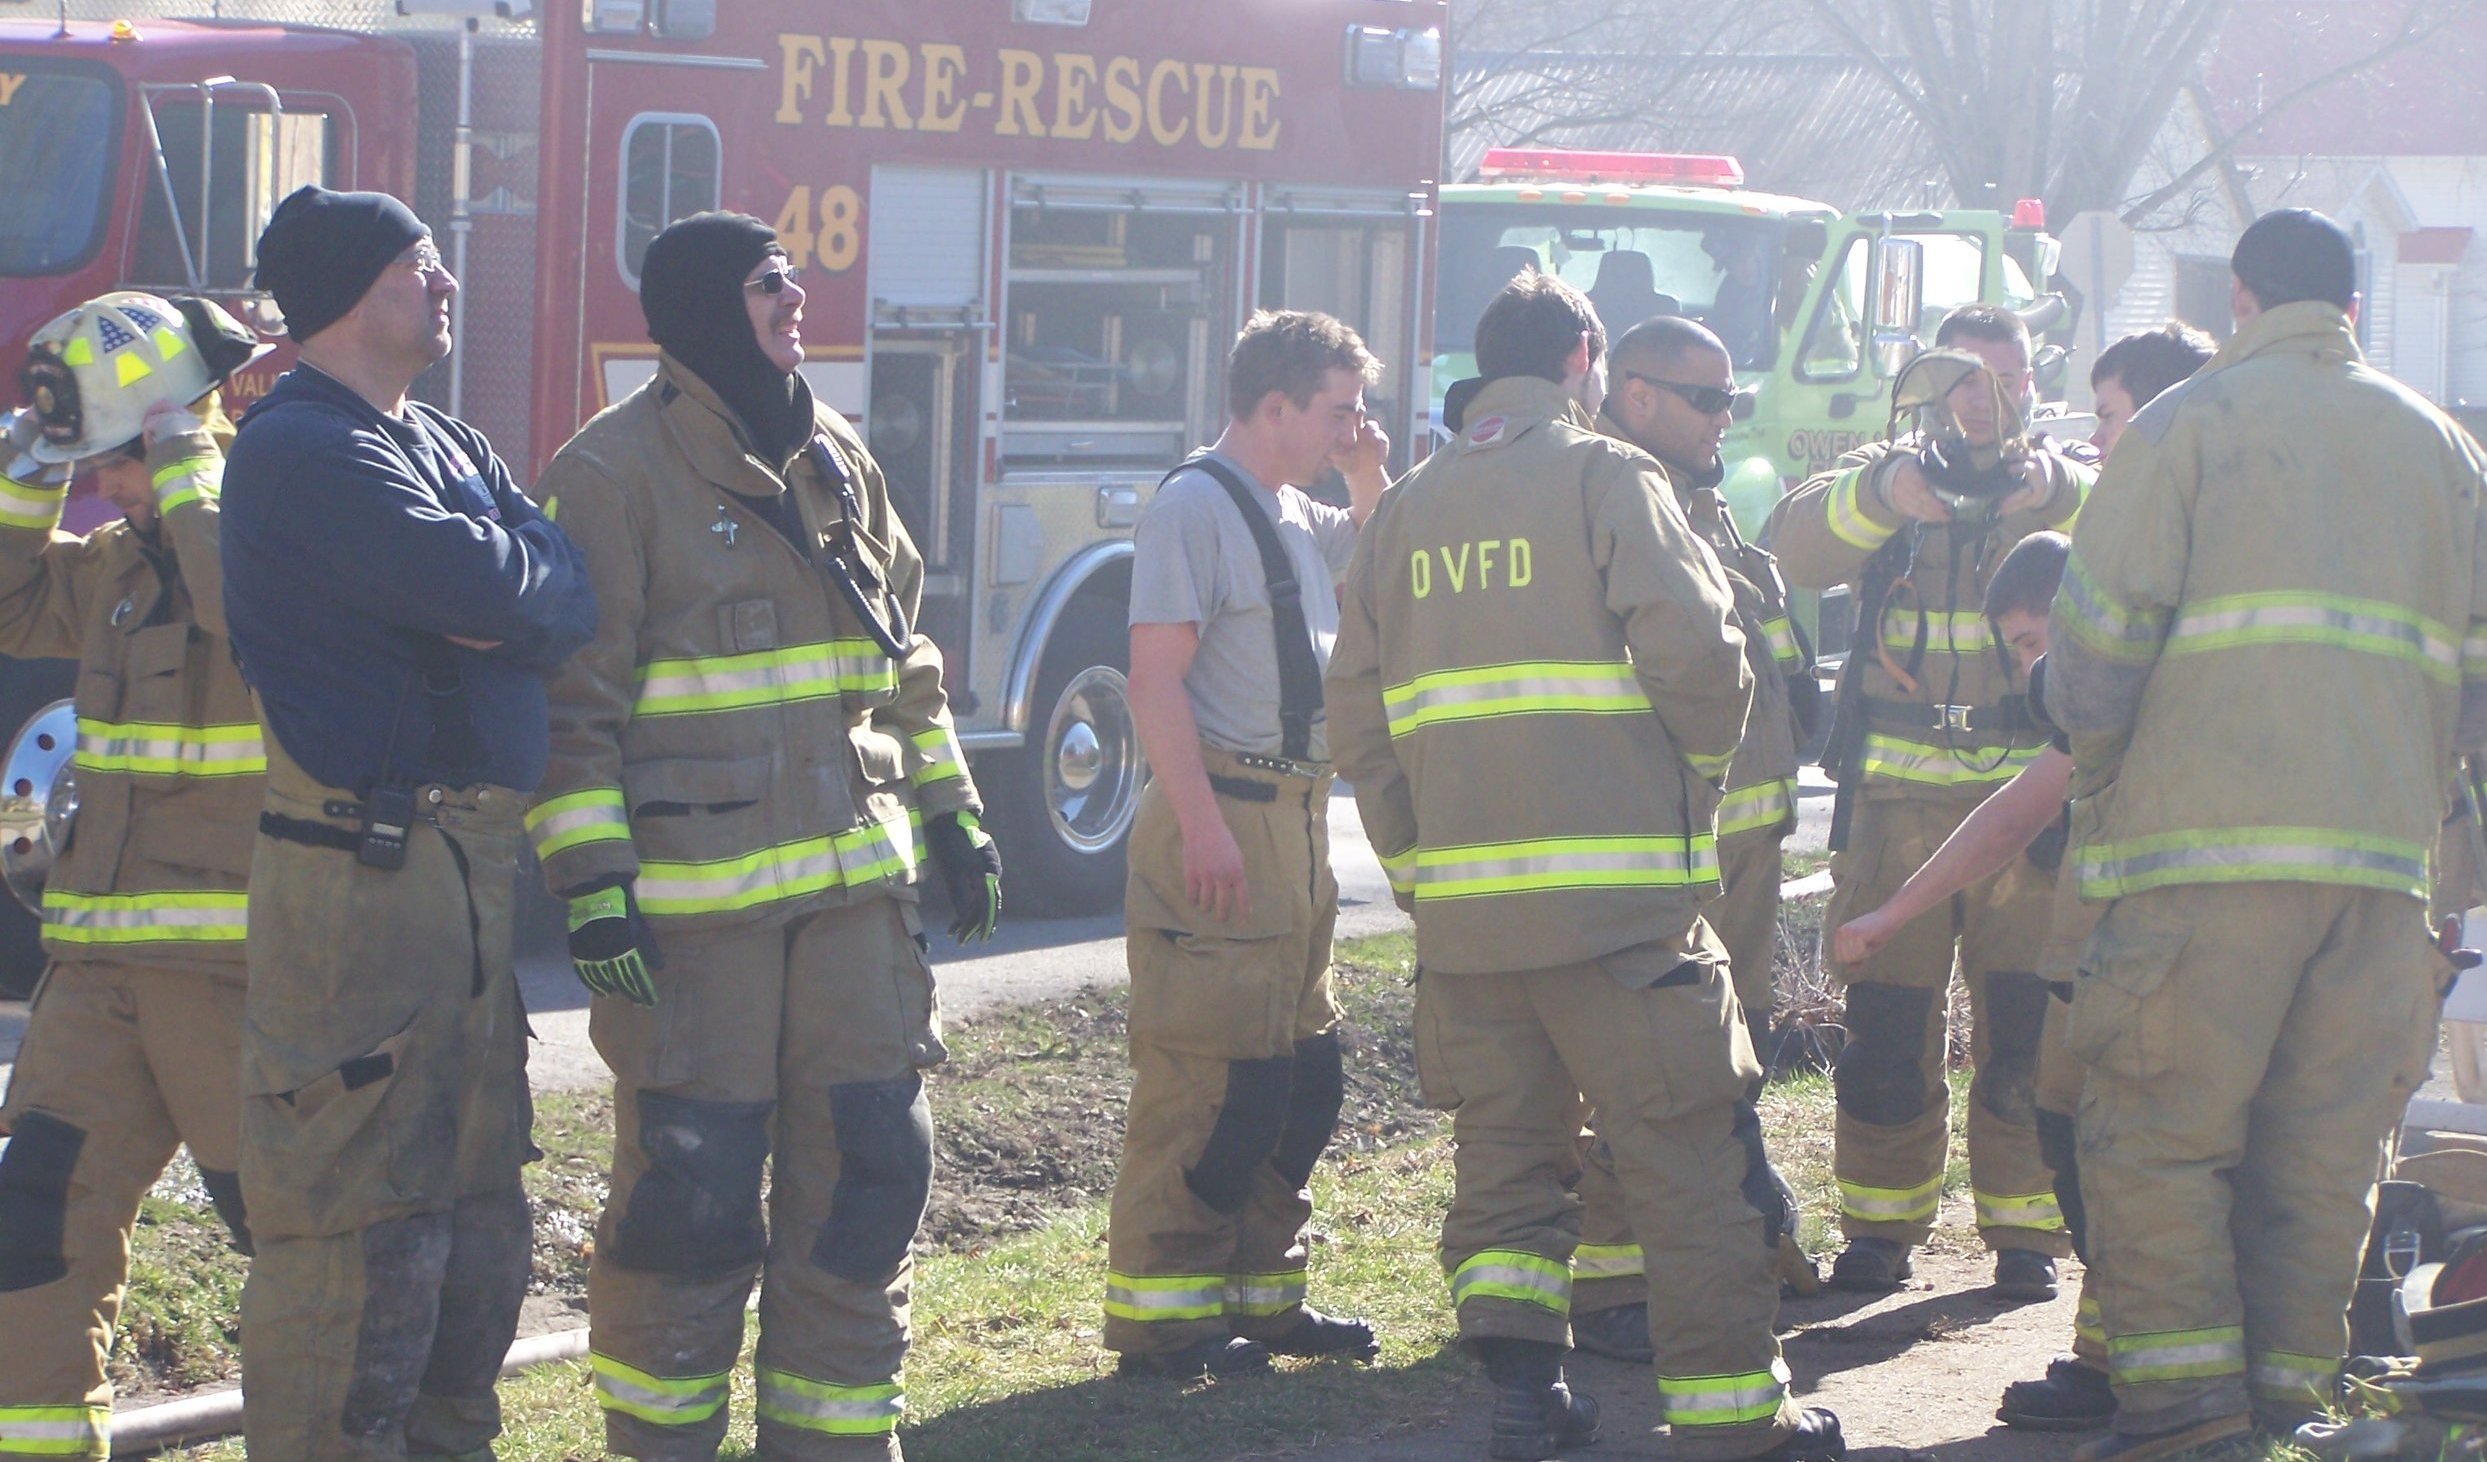 2013 Grant to provide training to Owen Valley Volunteer Fire Department